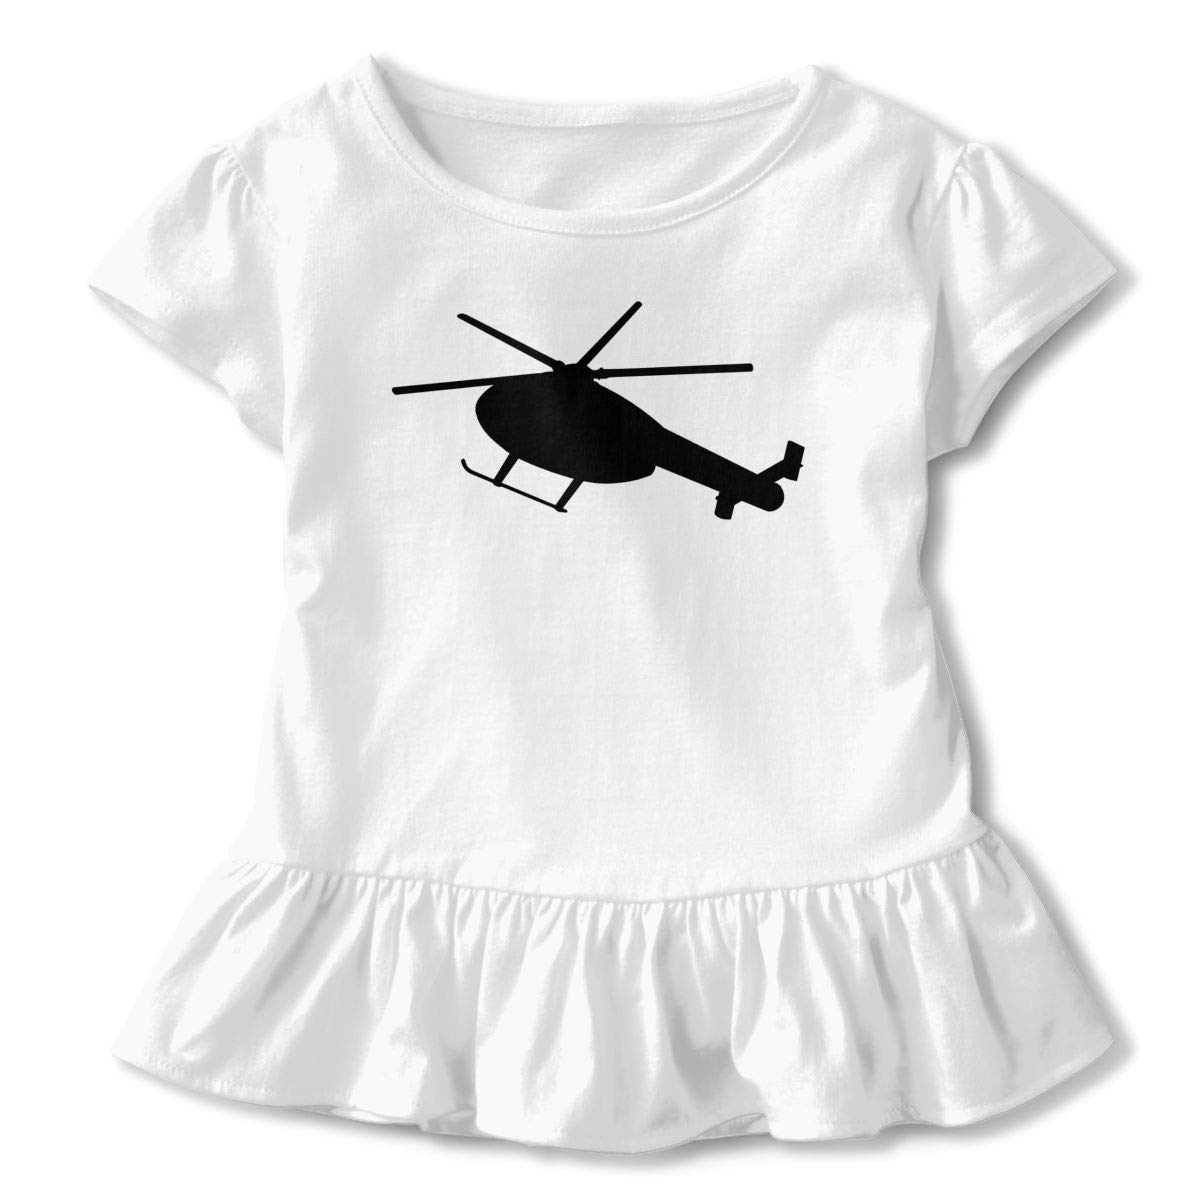 2-Pack Cotton Tee Helicopter Silhouette Baby Girls Short Sleeve Ruffles T-Shirt Tops